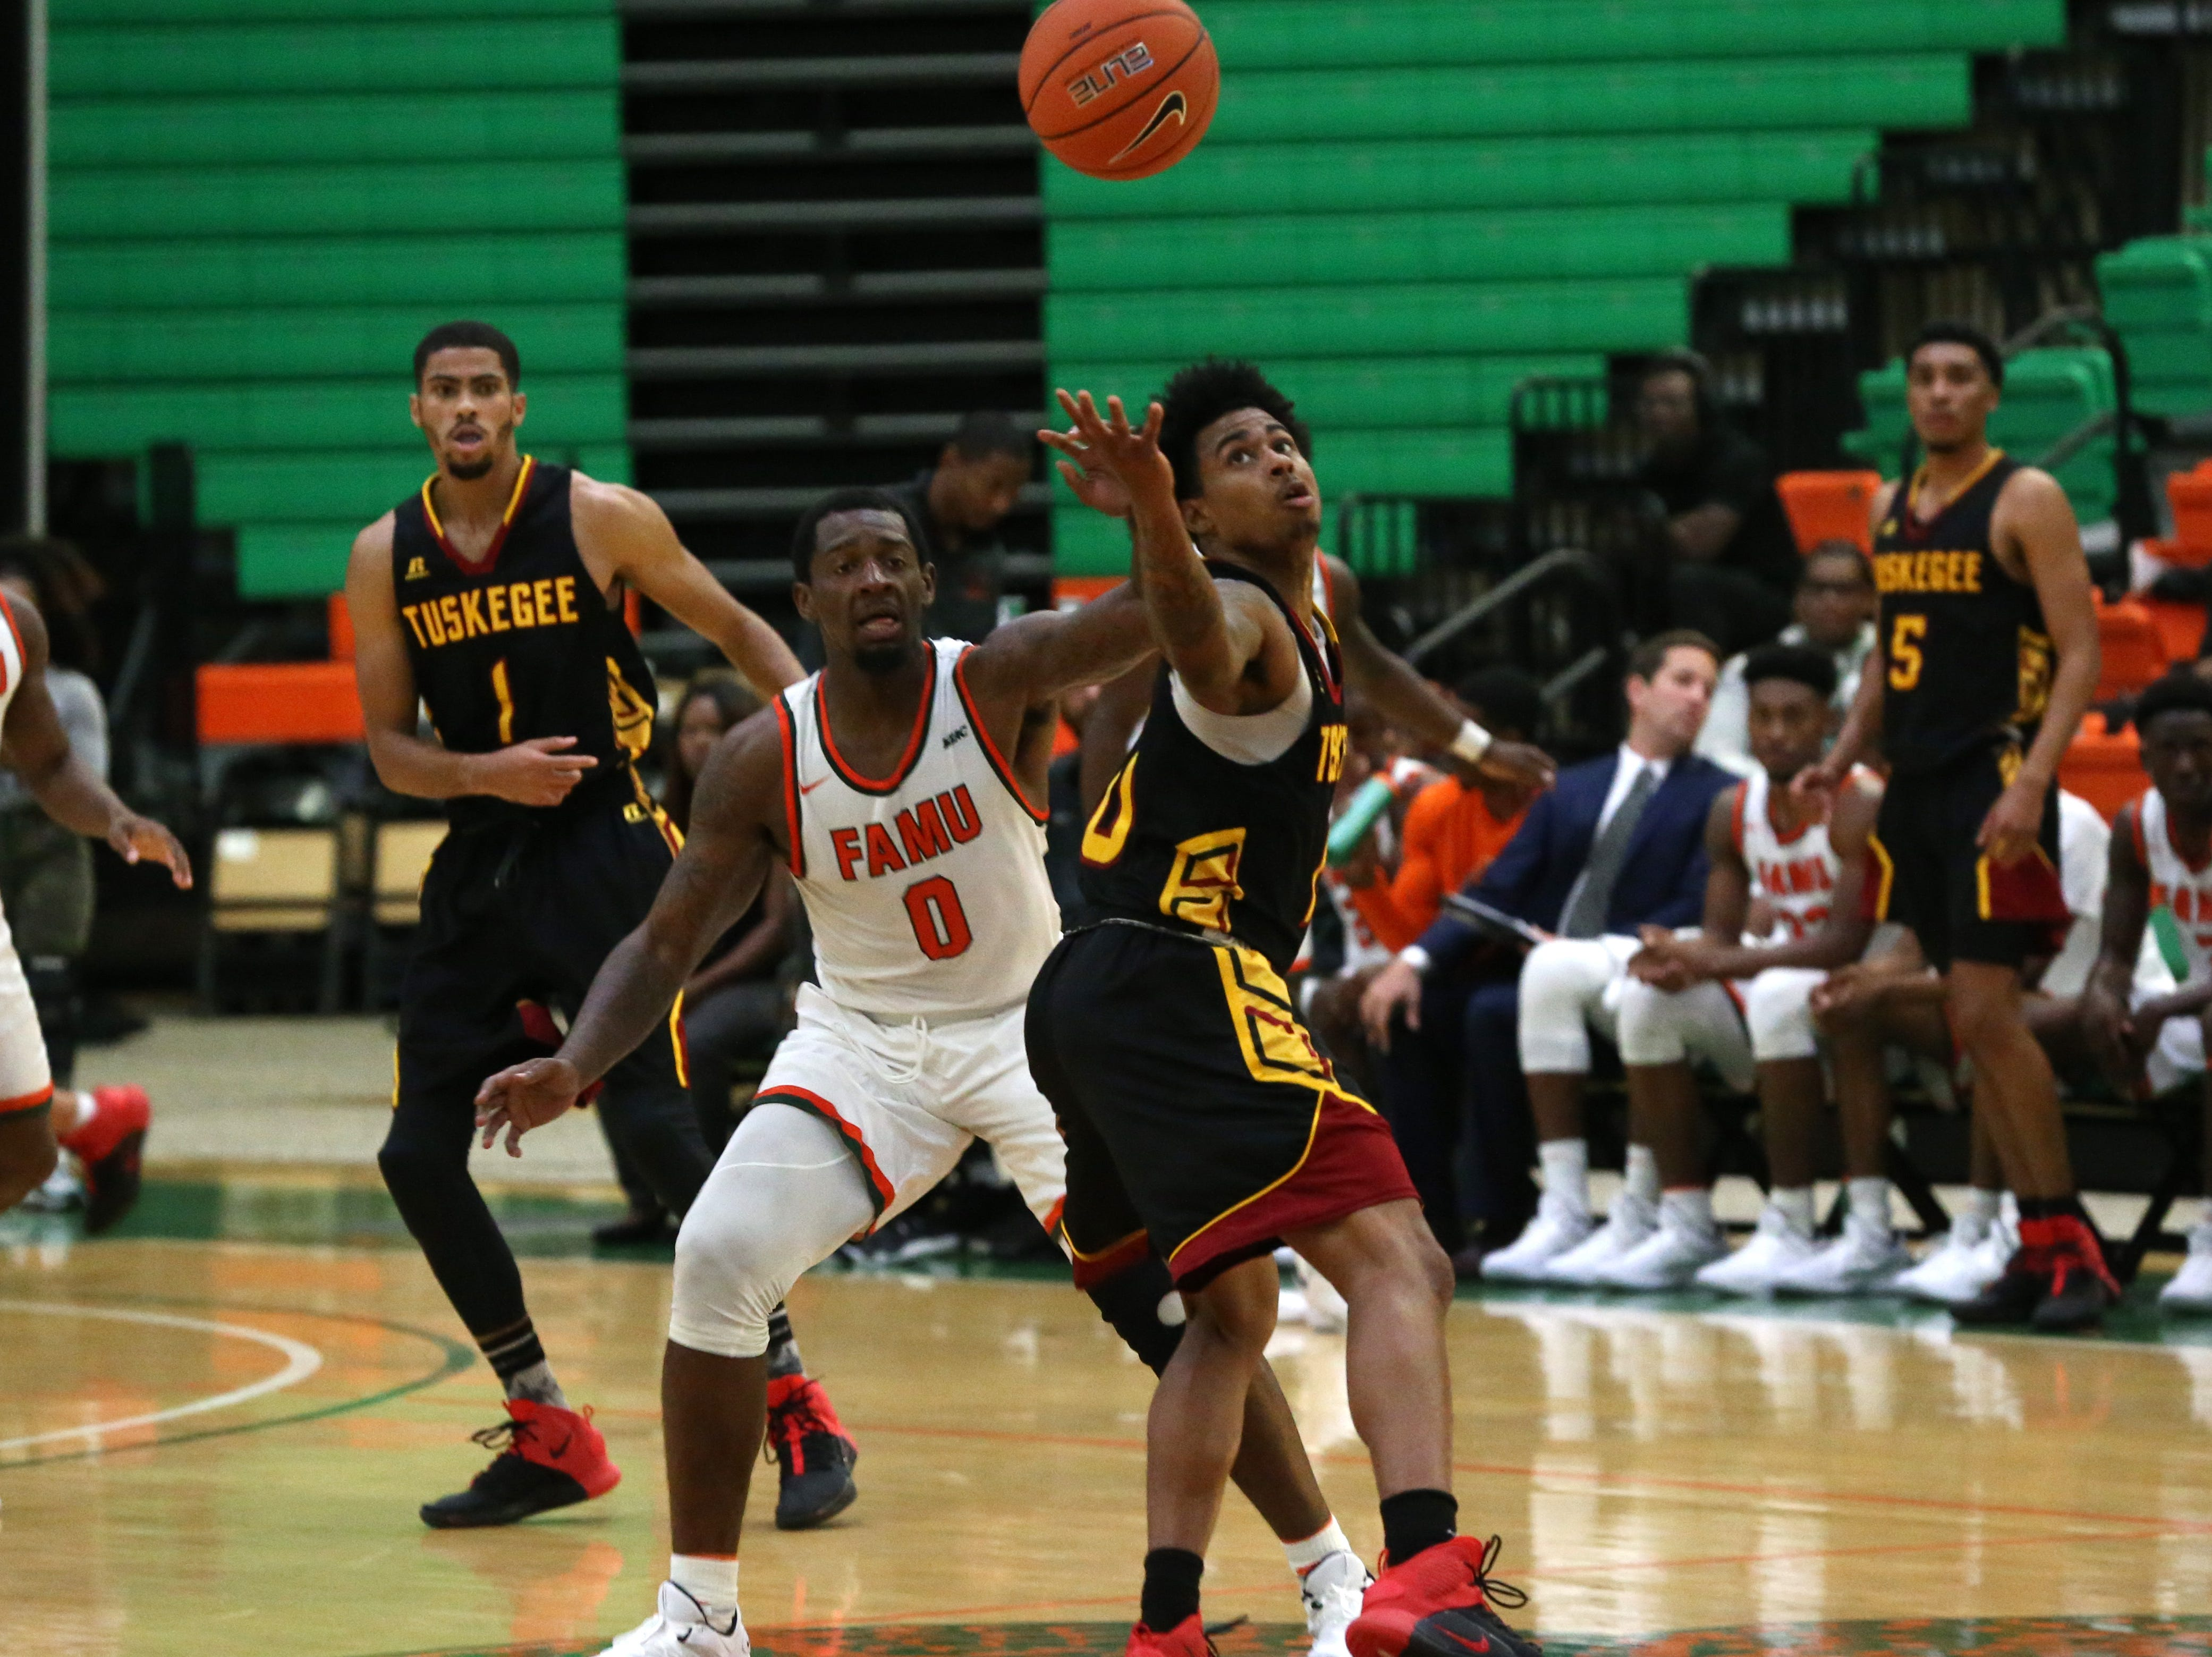 The FAMU Rattlers take on the Tuskegee Golden Tigers in their first home game of the season in the Lawson Center, Saturday, Nov. 10, 2018.